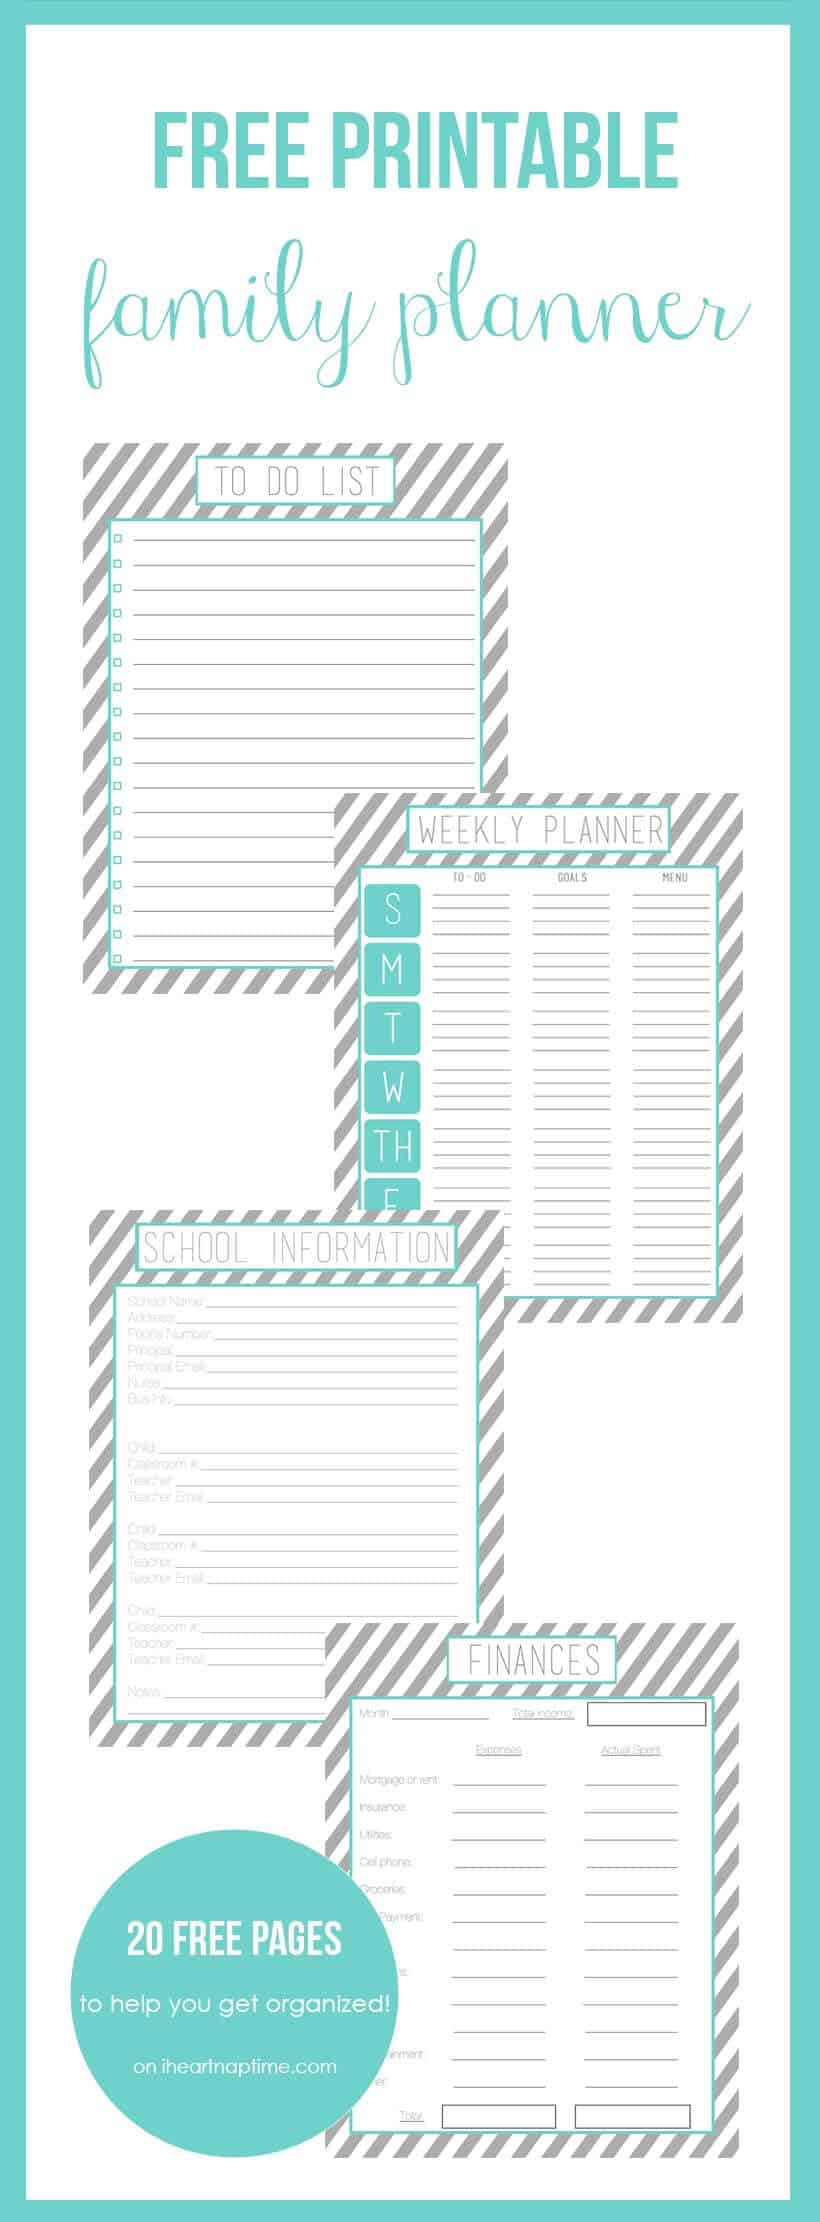 Superb image in free printable family planner